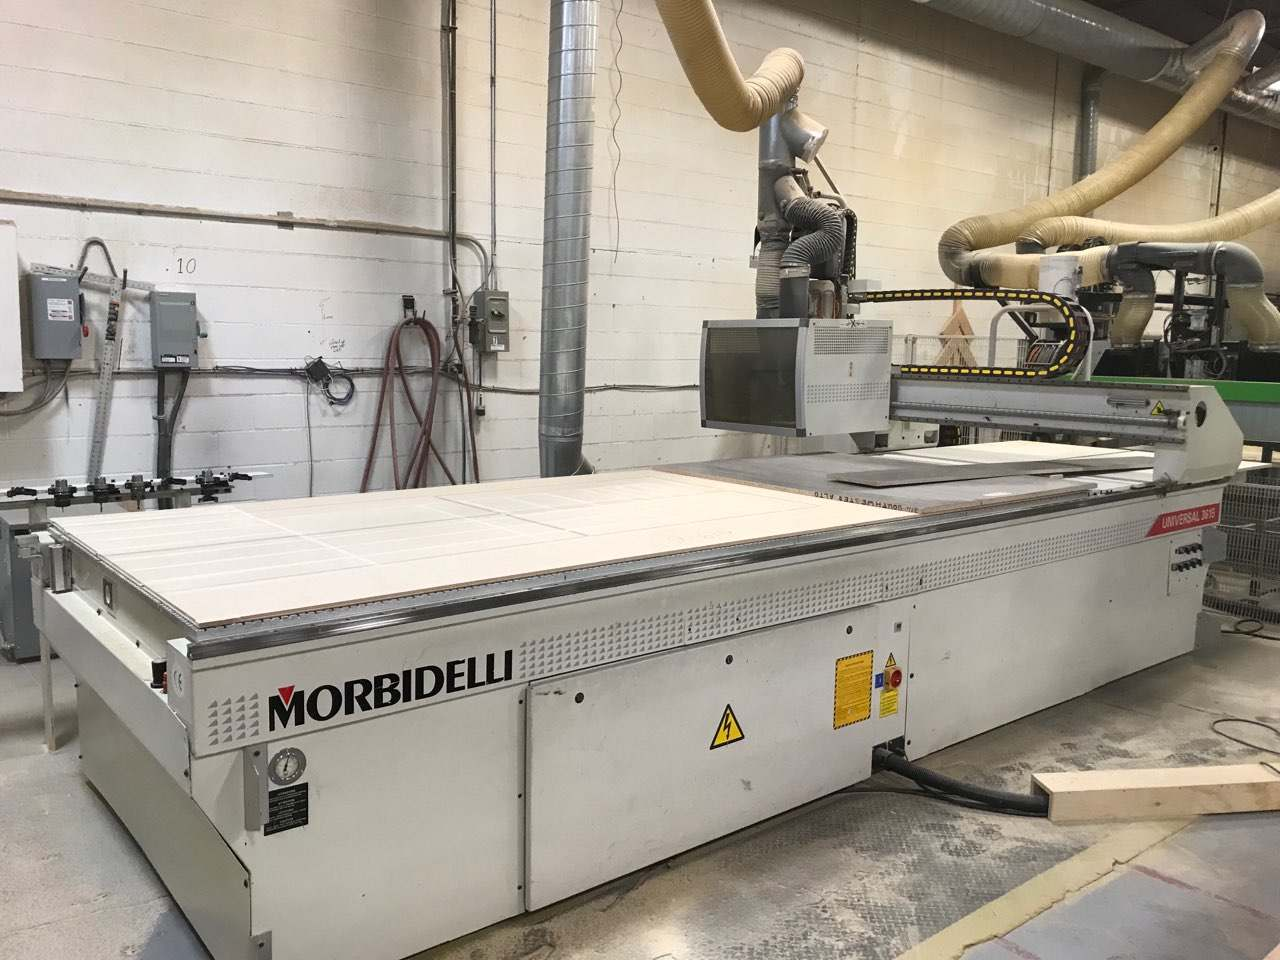 2007 Morbidelli Universal 3615 12ft X 4ft CNC flat table